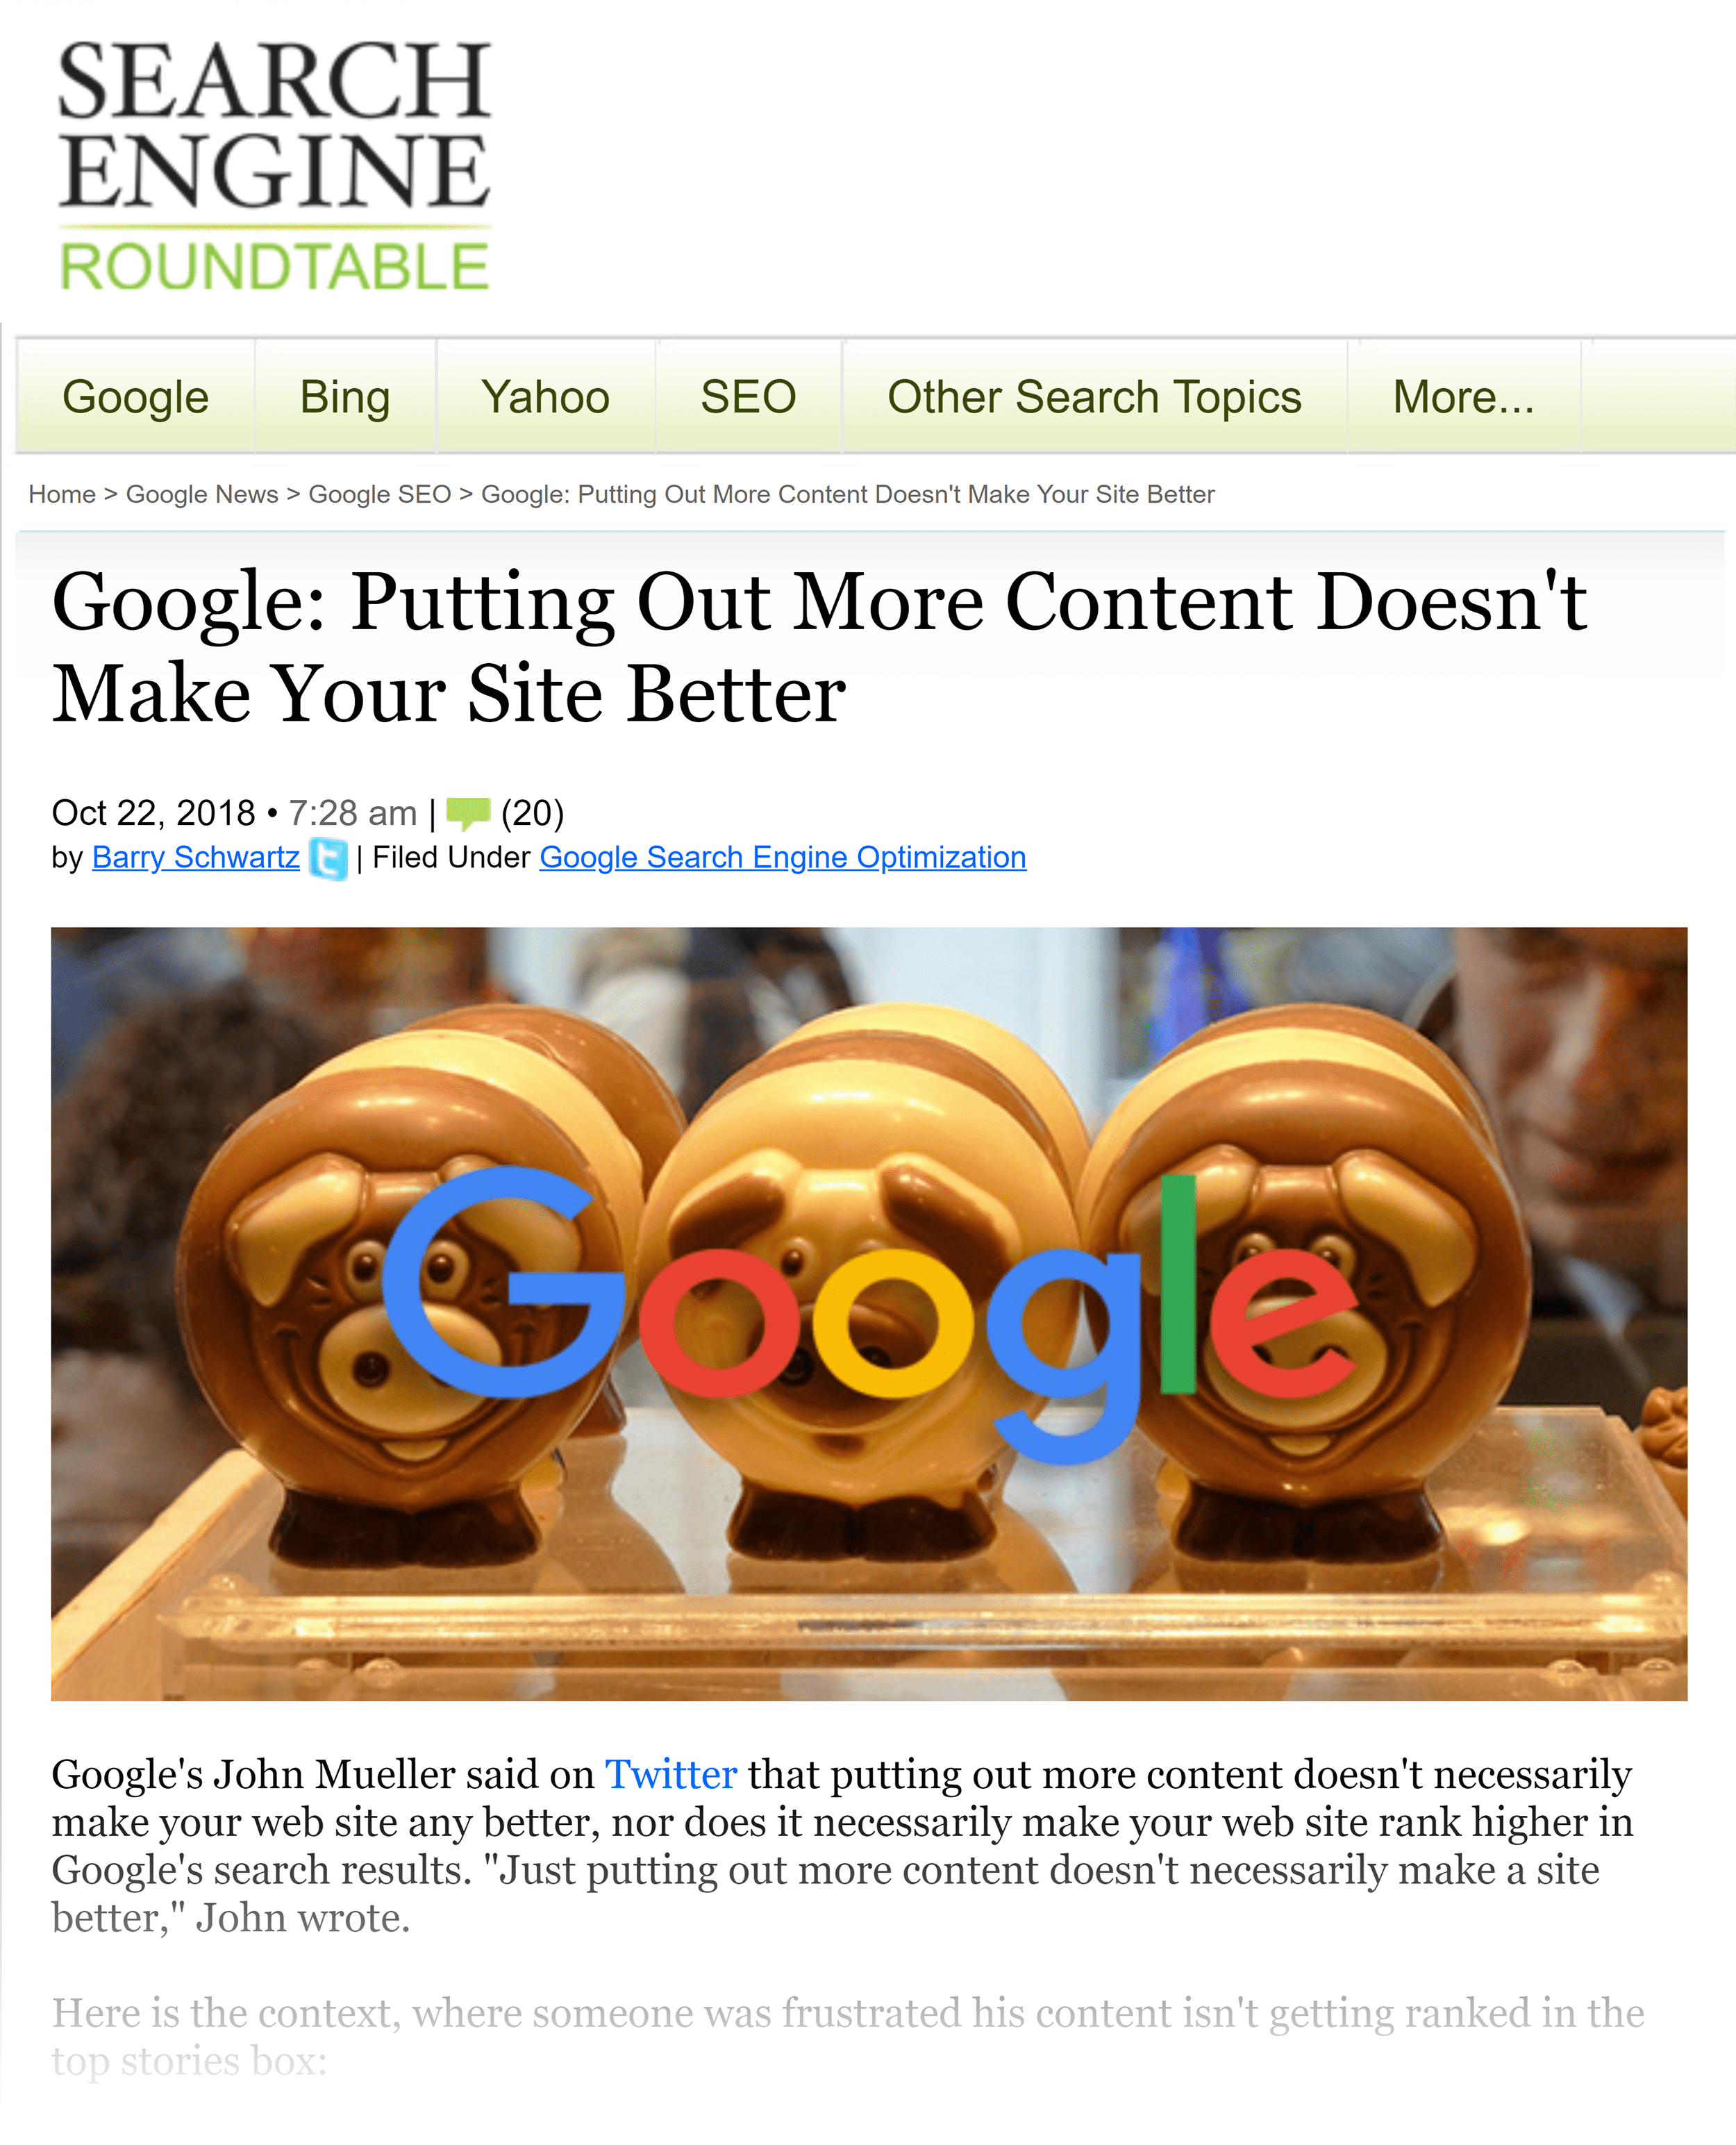 Search Engine Roundtable – Google: More content isn't better